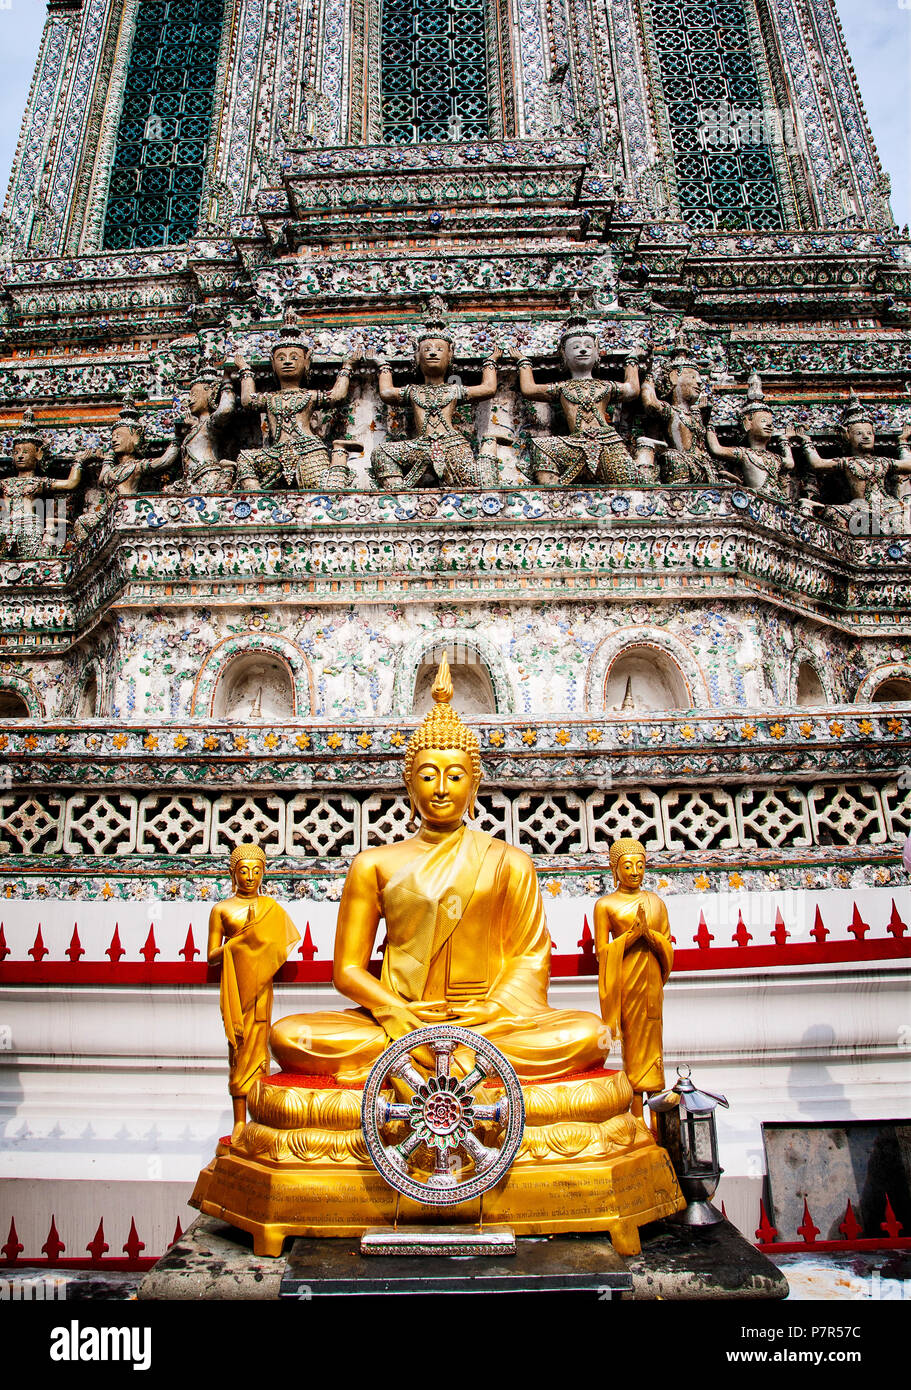 A golden Buddha adorns the exterior of Wat Arun on the Choa Phraya River.  Bangkok, Thailand. - Stock Image